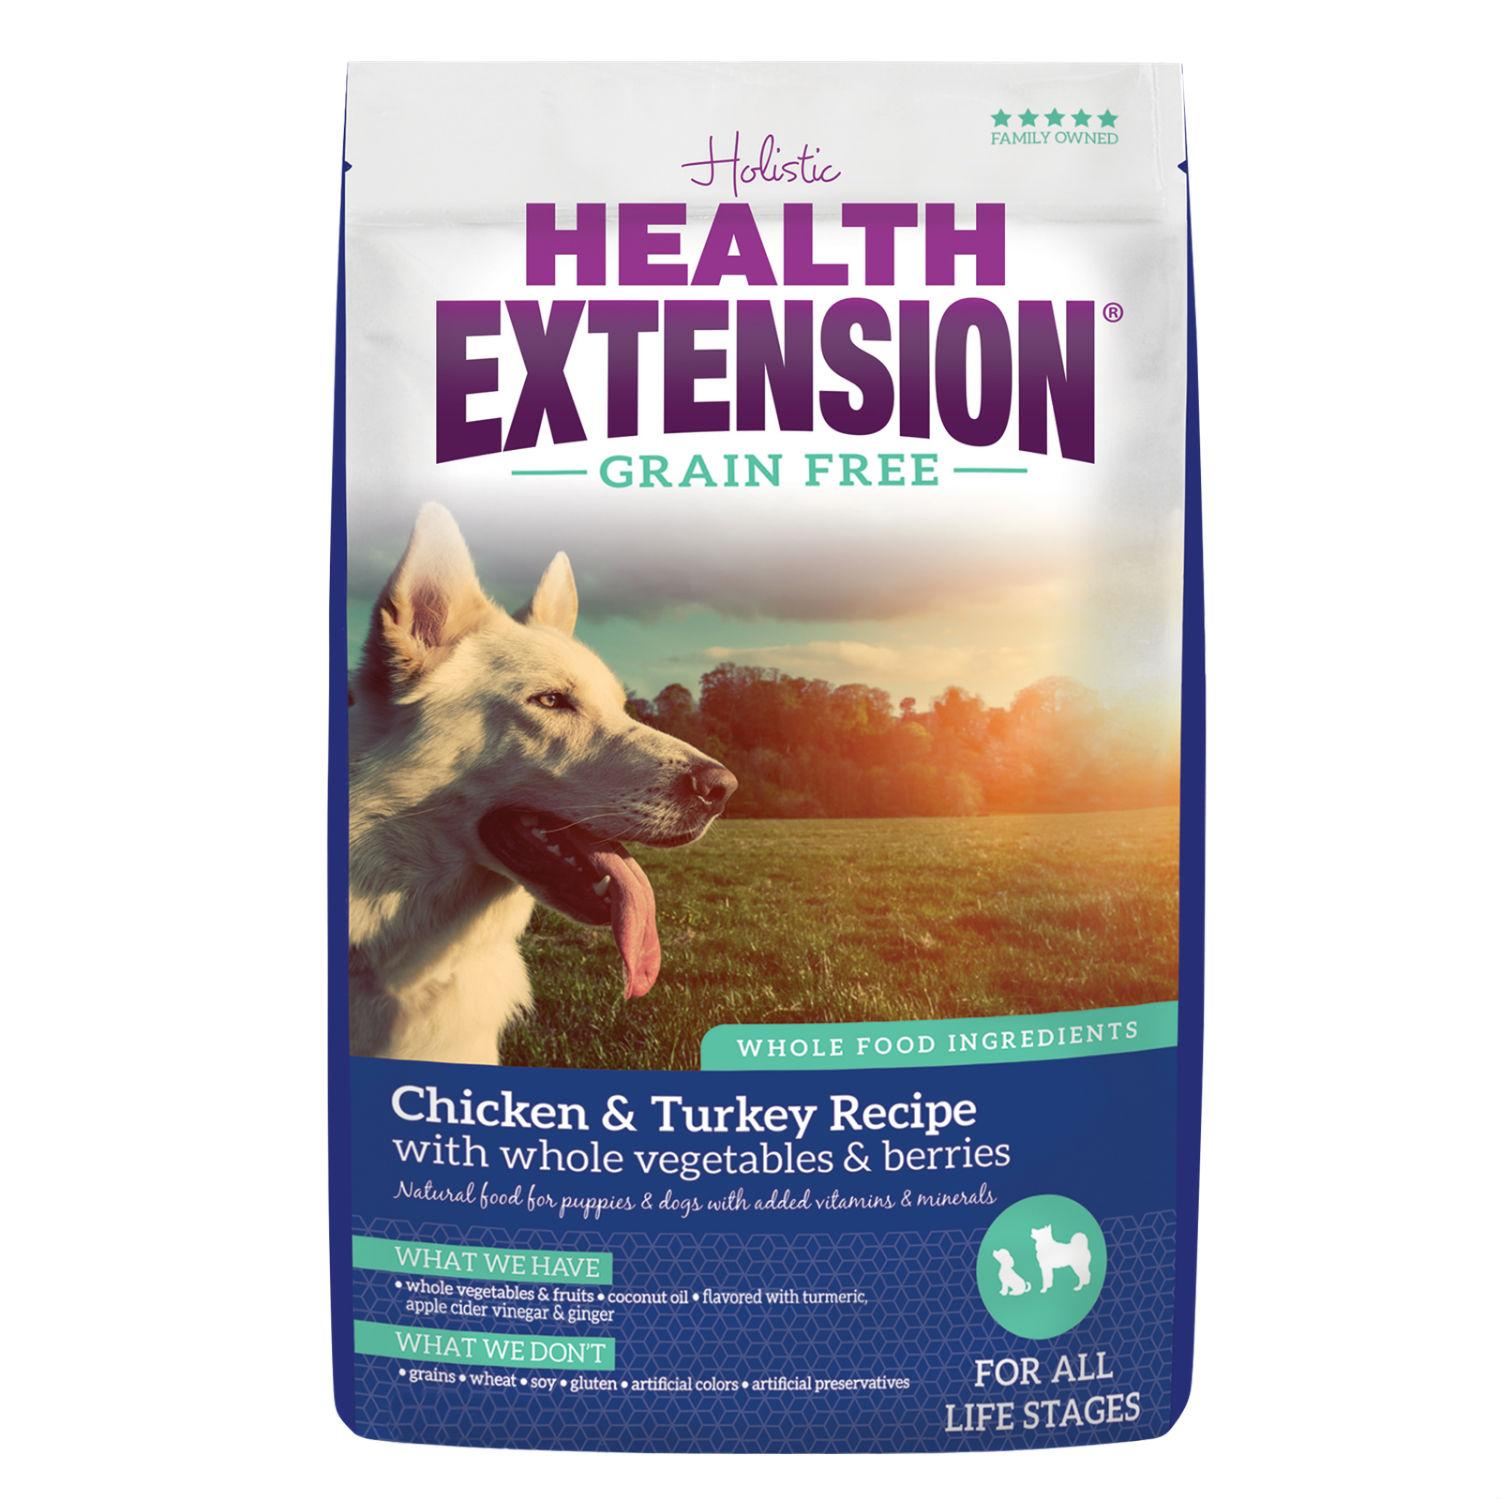 Health Extension Grain Free Dry Dog Food - Chicken & Turkey